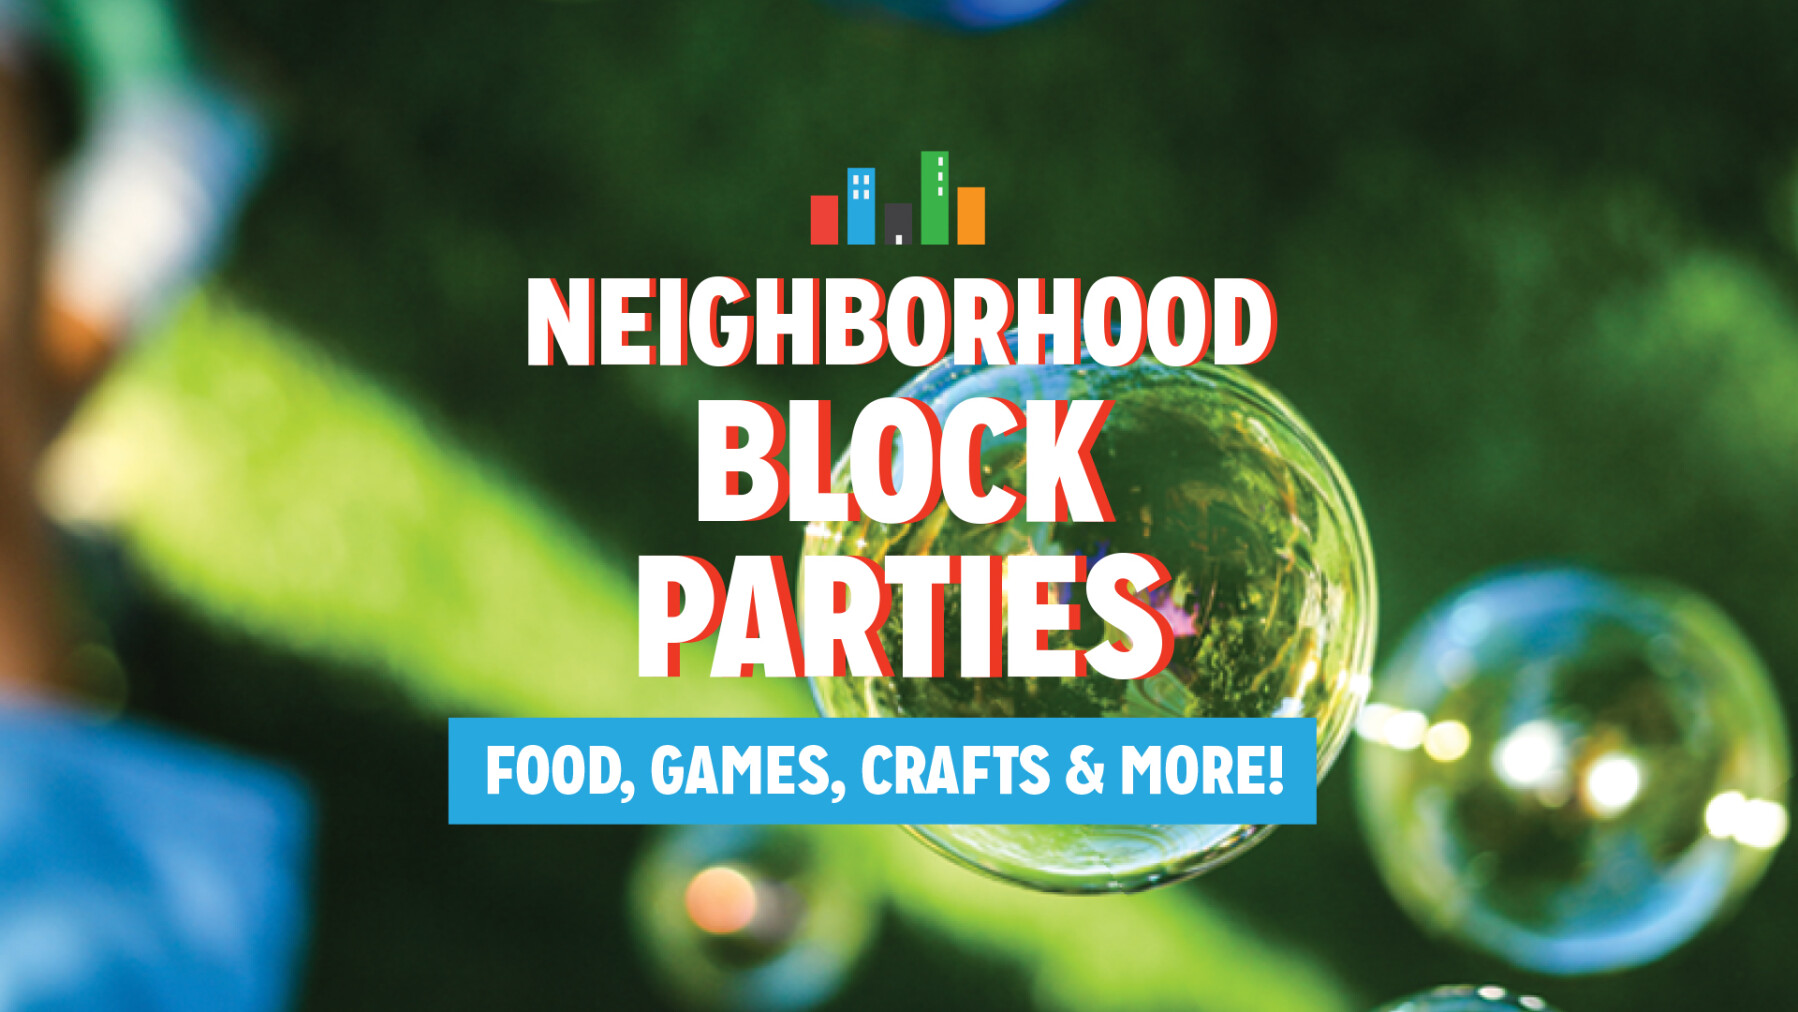 Neighborhood Block Parties